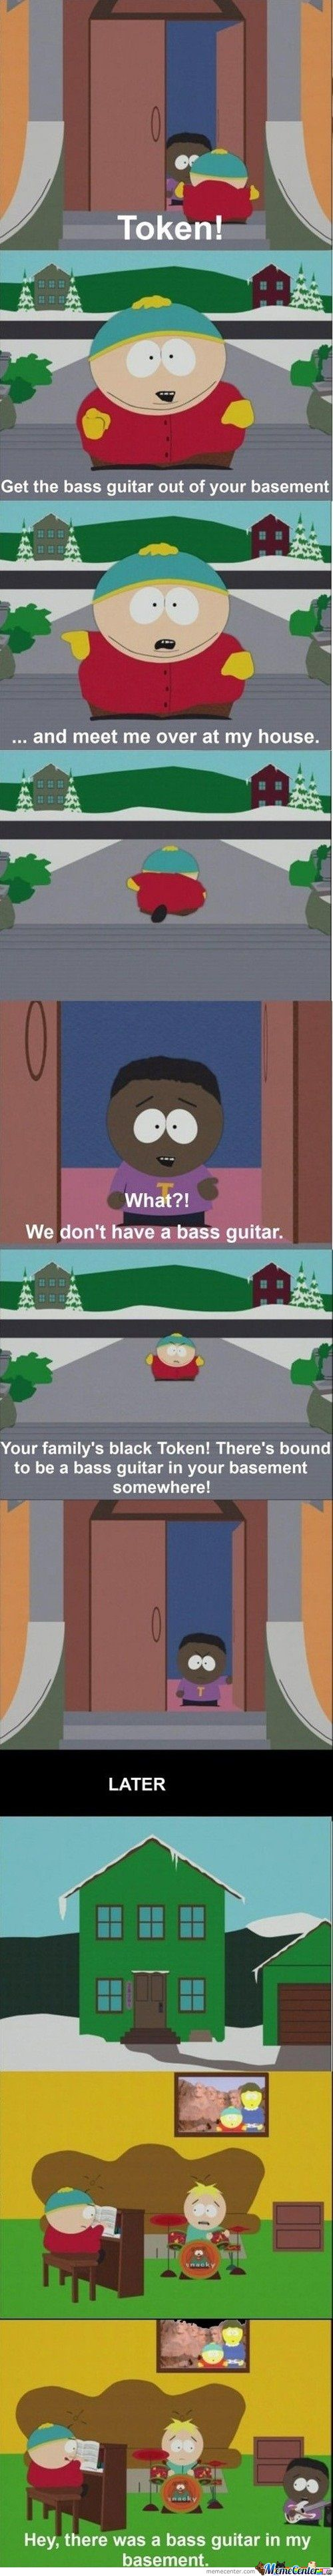 Just Can't Get Enough Of South Park - Maybe Racist